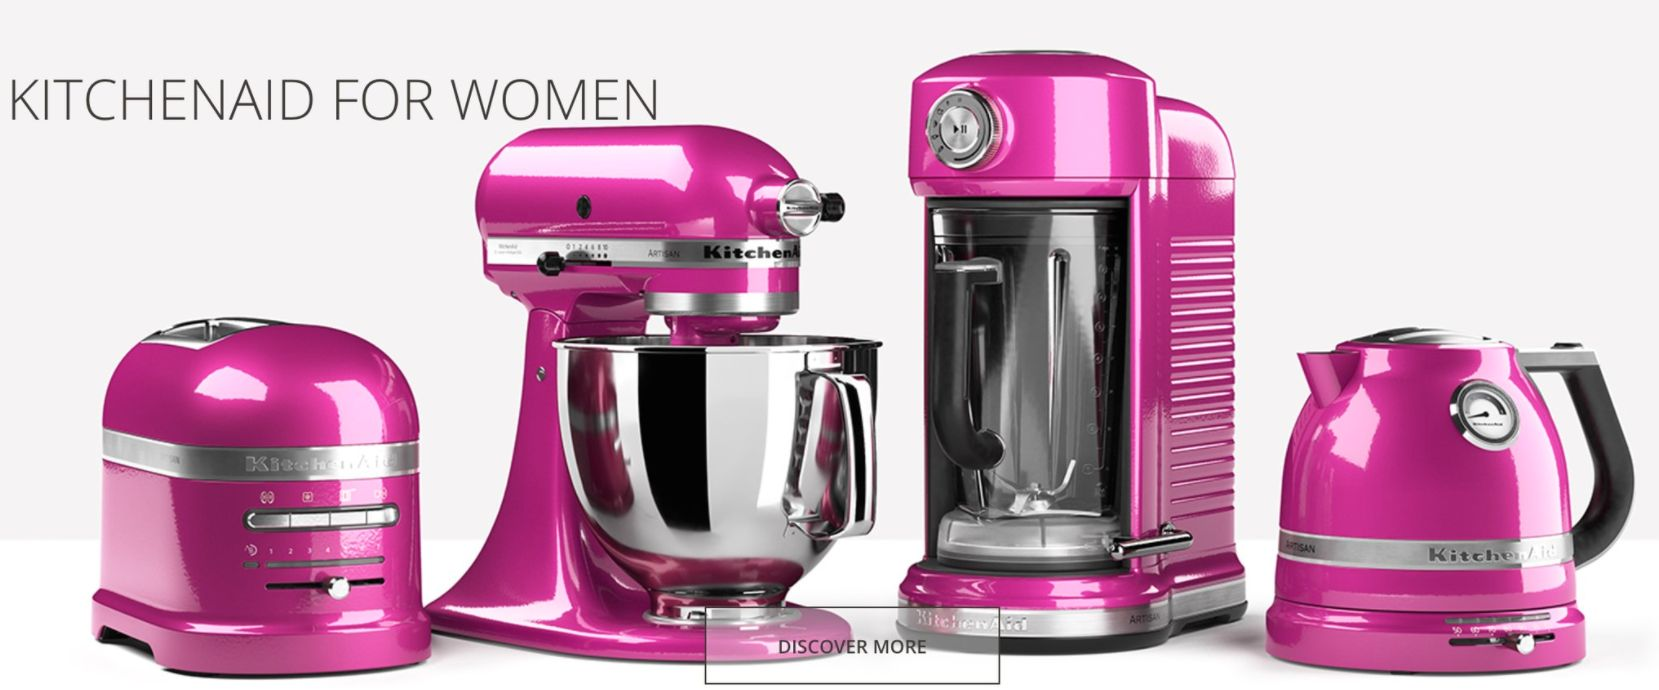 KitchenAid Called 'Sexist' For Advertising Pink Cooking Appliances 'For